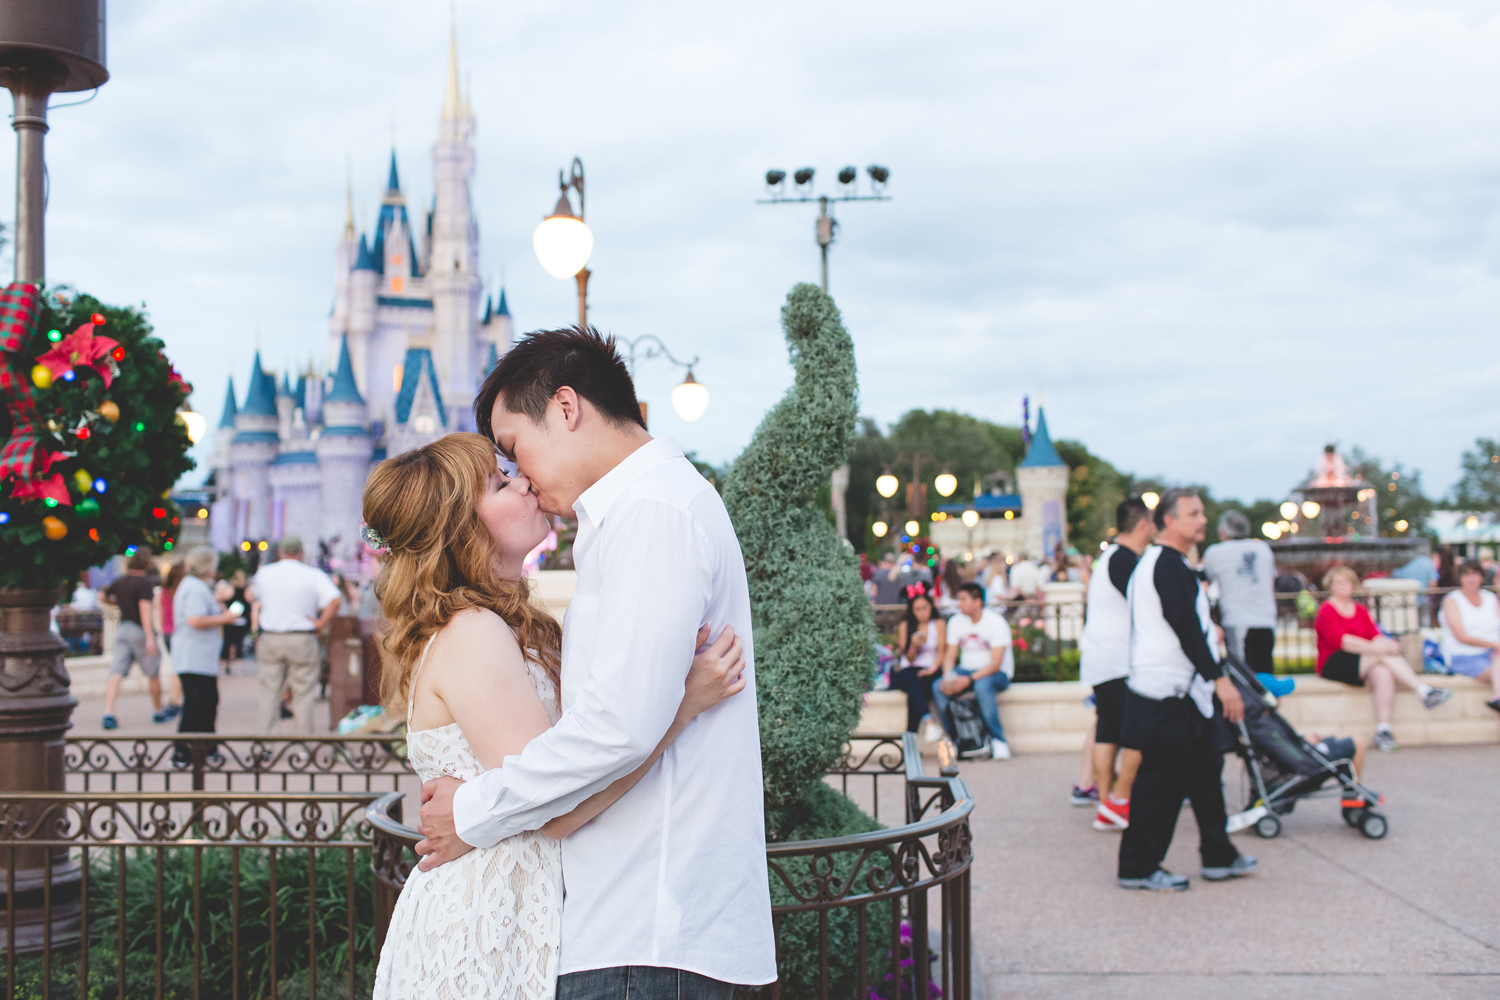 Disney Honeymoon session - Disney Engagement Photos - Disney Wedding Photographer - Destination Orlando Wedding Photographer - Jaime DiOrio (84).jpg